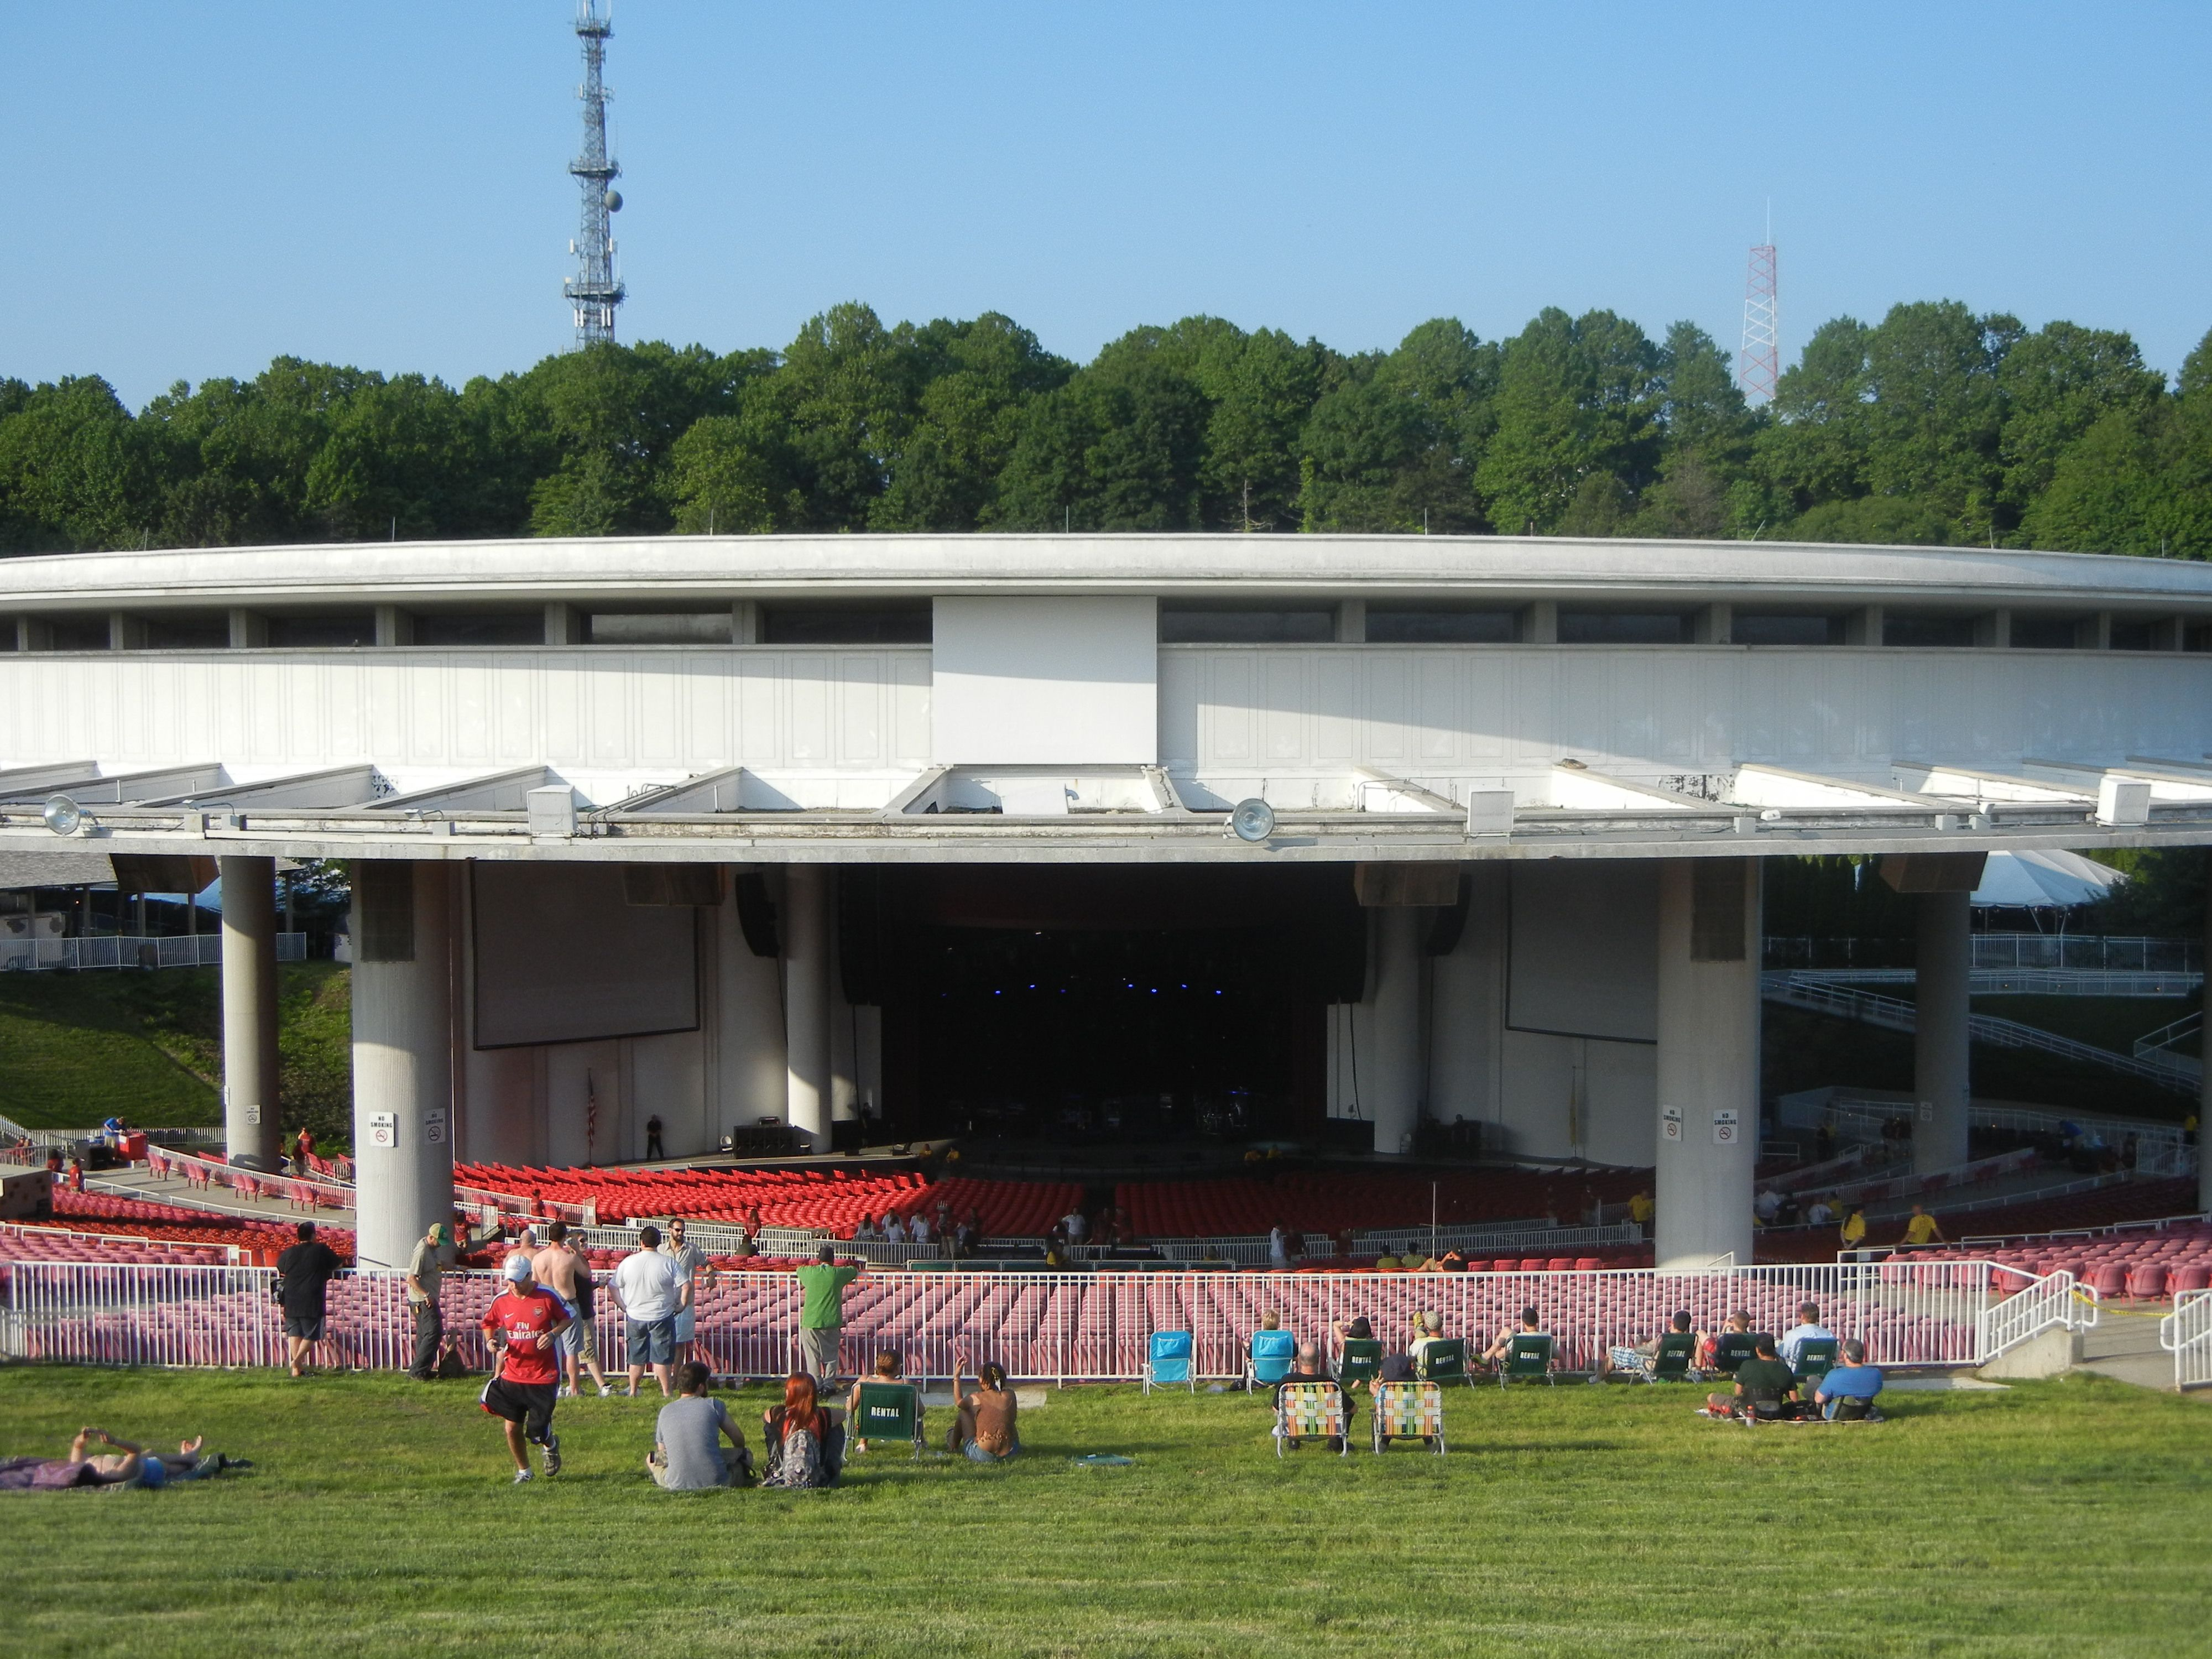 Pnc Bank Arts Center Formerly Garden State Arts Center Opened In